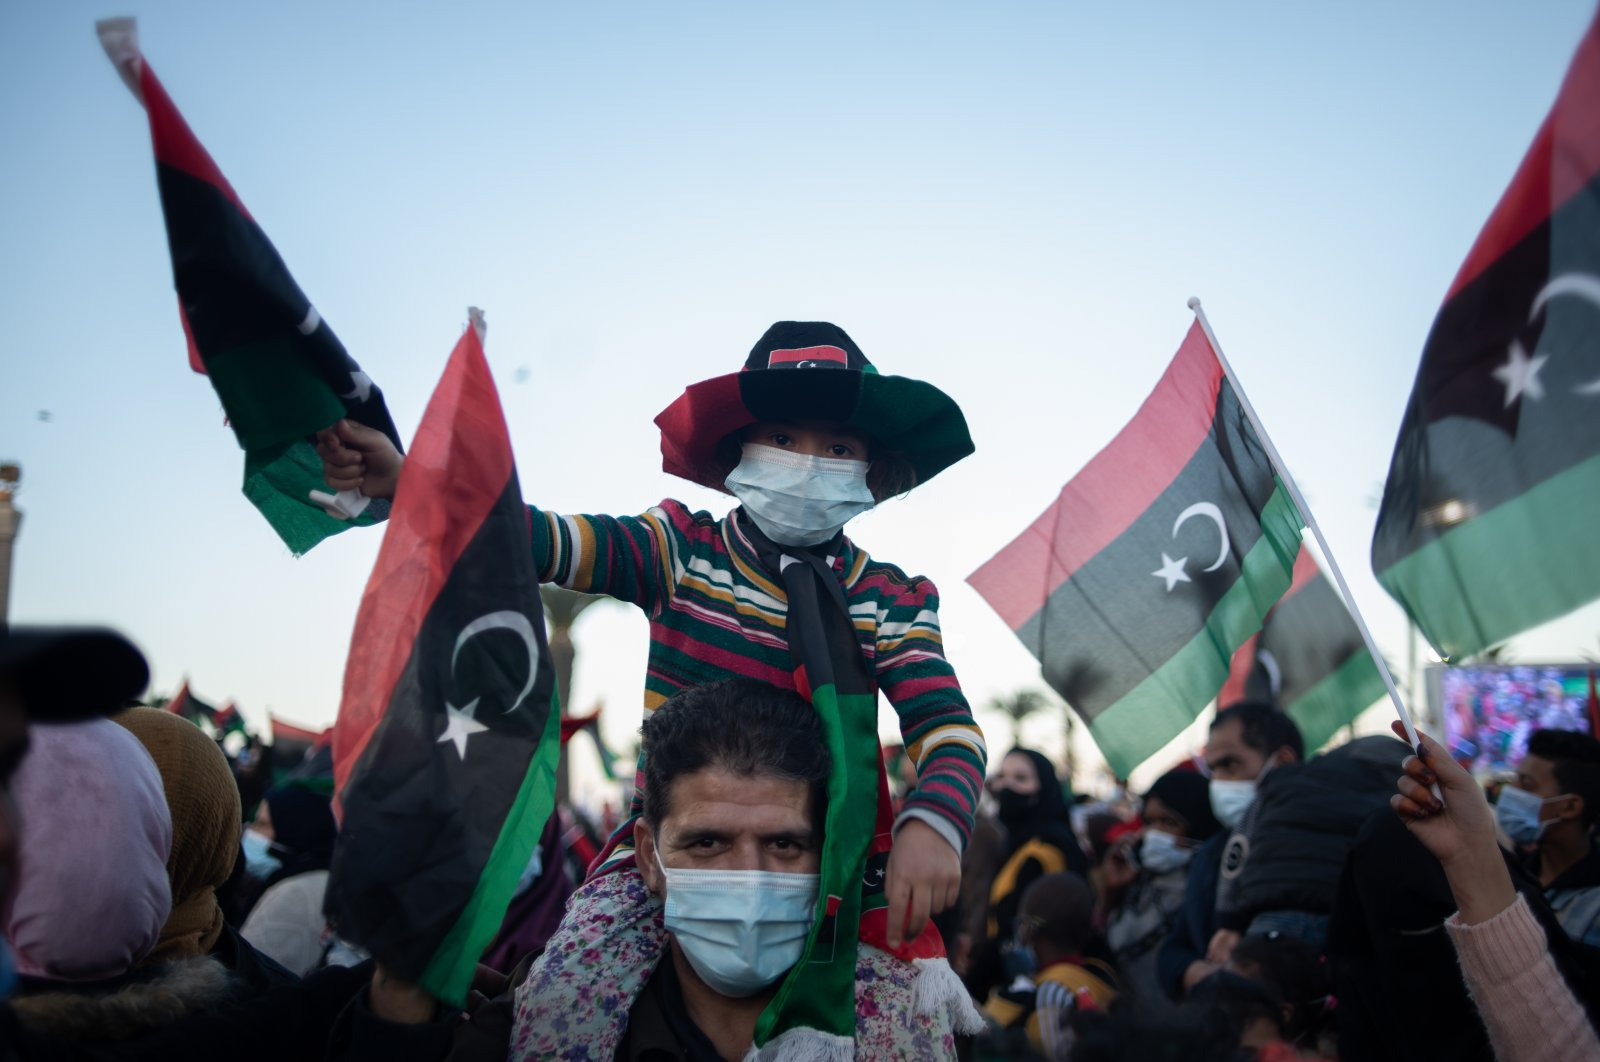 People wave flags and chant slogans to commemorate the 10th anniversary of the Arab Spring in Martyrs' Square, Tripoli, Libya, Feb. 17, 2021. (Photo by Getty Images)